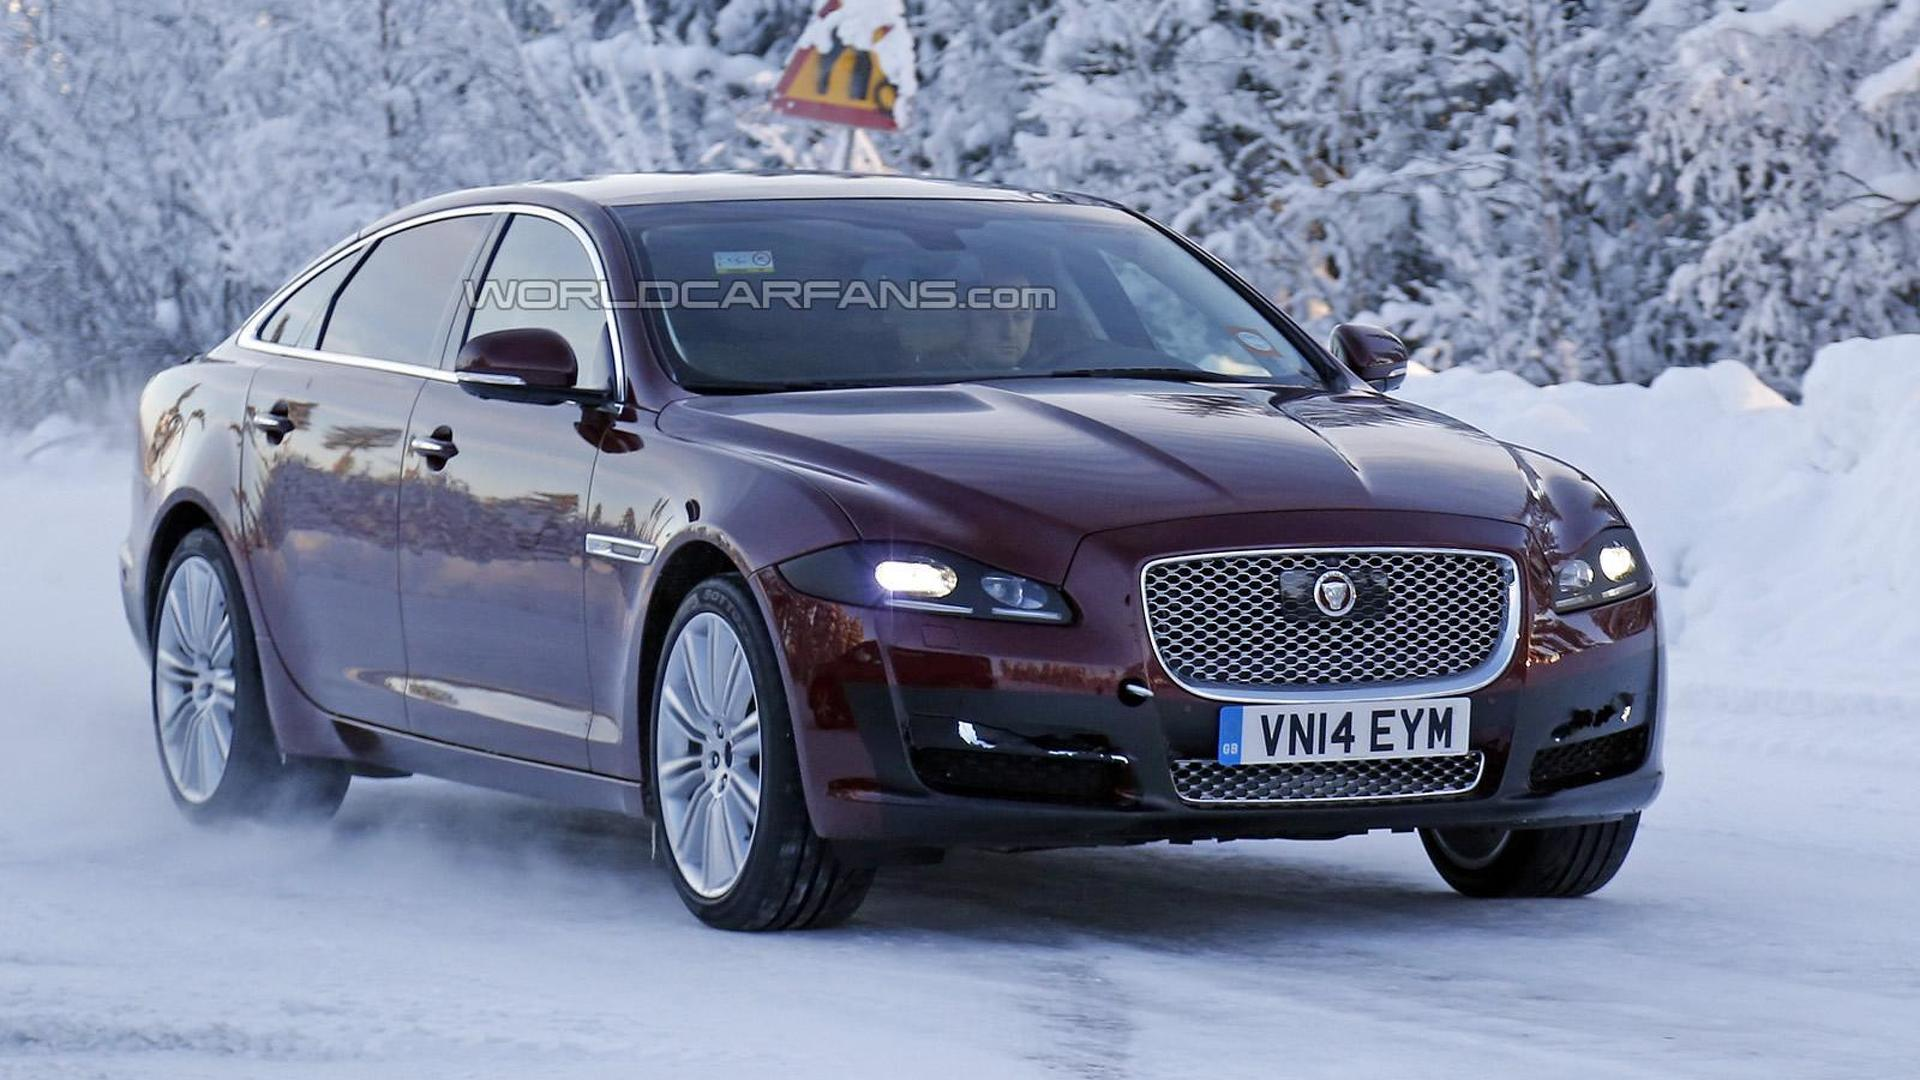 Jaguar XJ facelift spied hiding minor cosmetic revisions